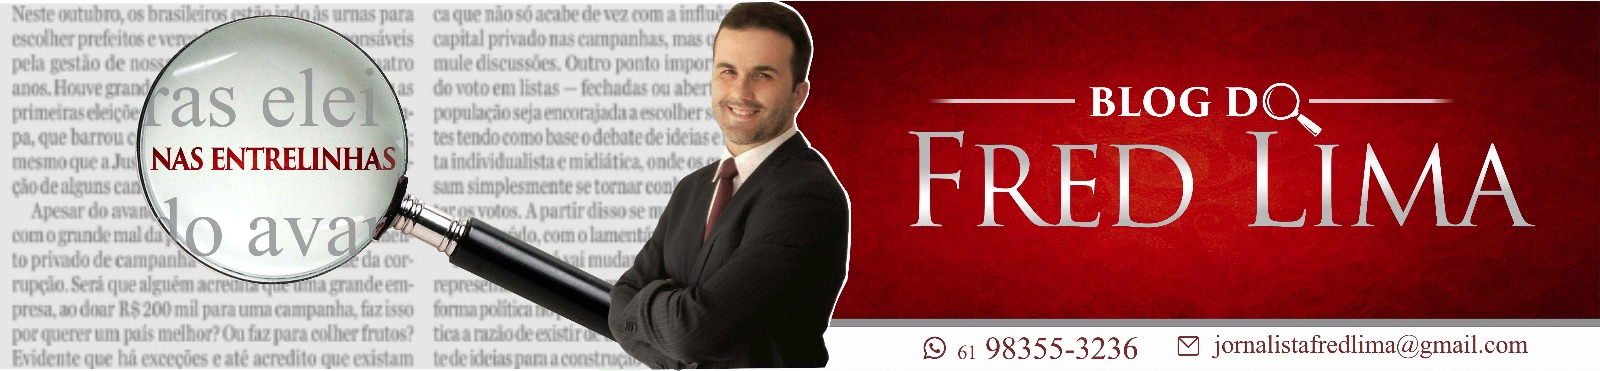 Blog do Fred Lima